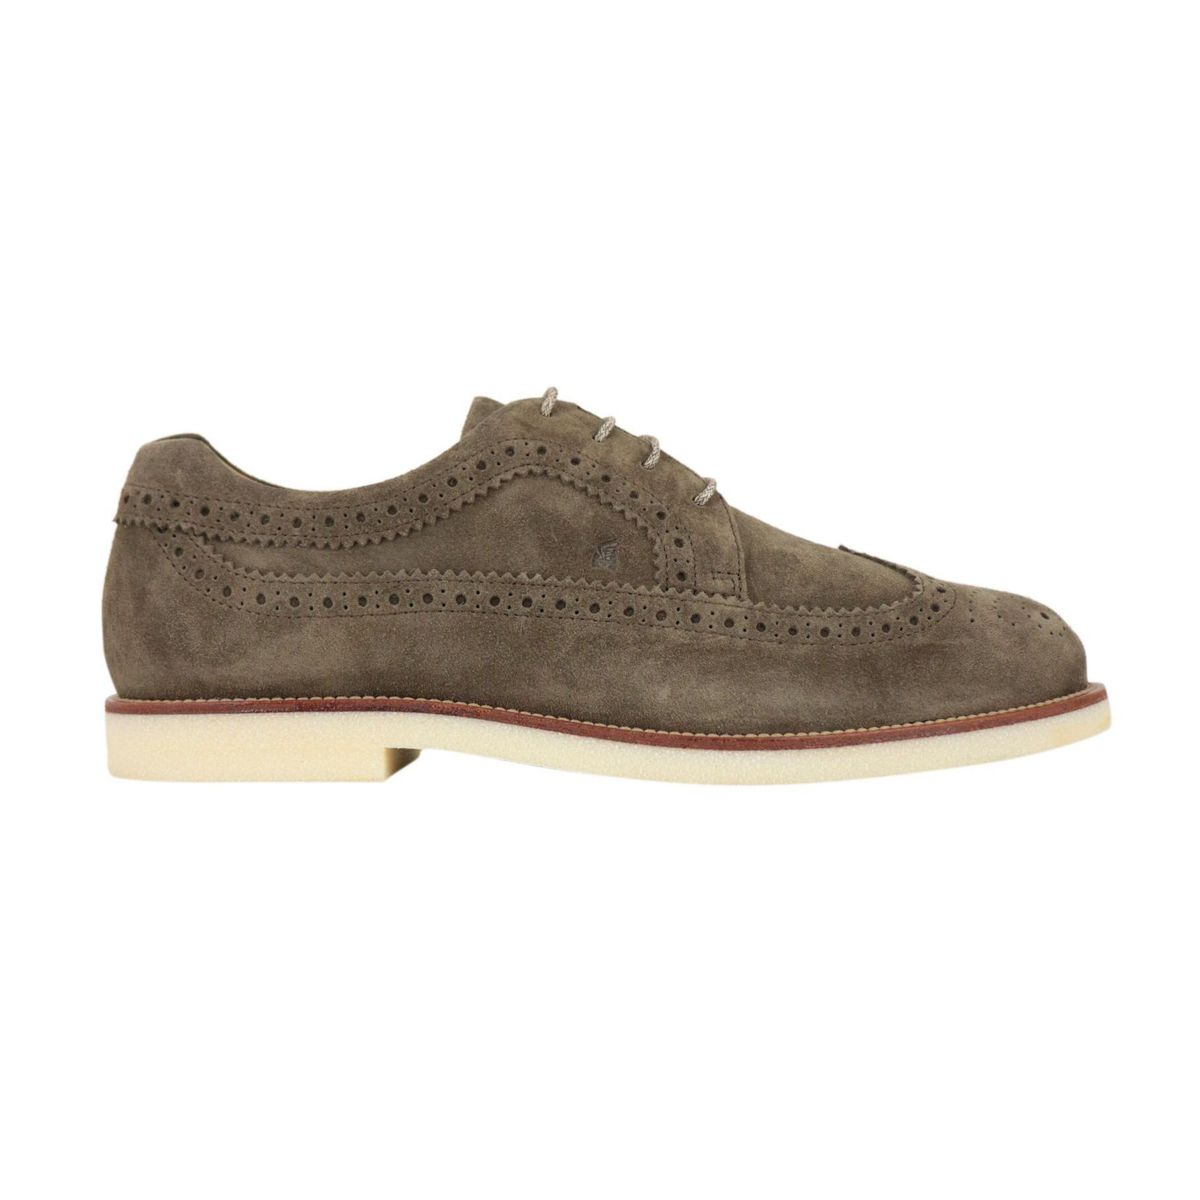 Lace-up shoe bottom 456 Business Casual Moro Hogan